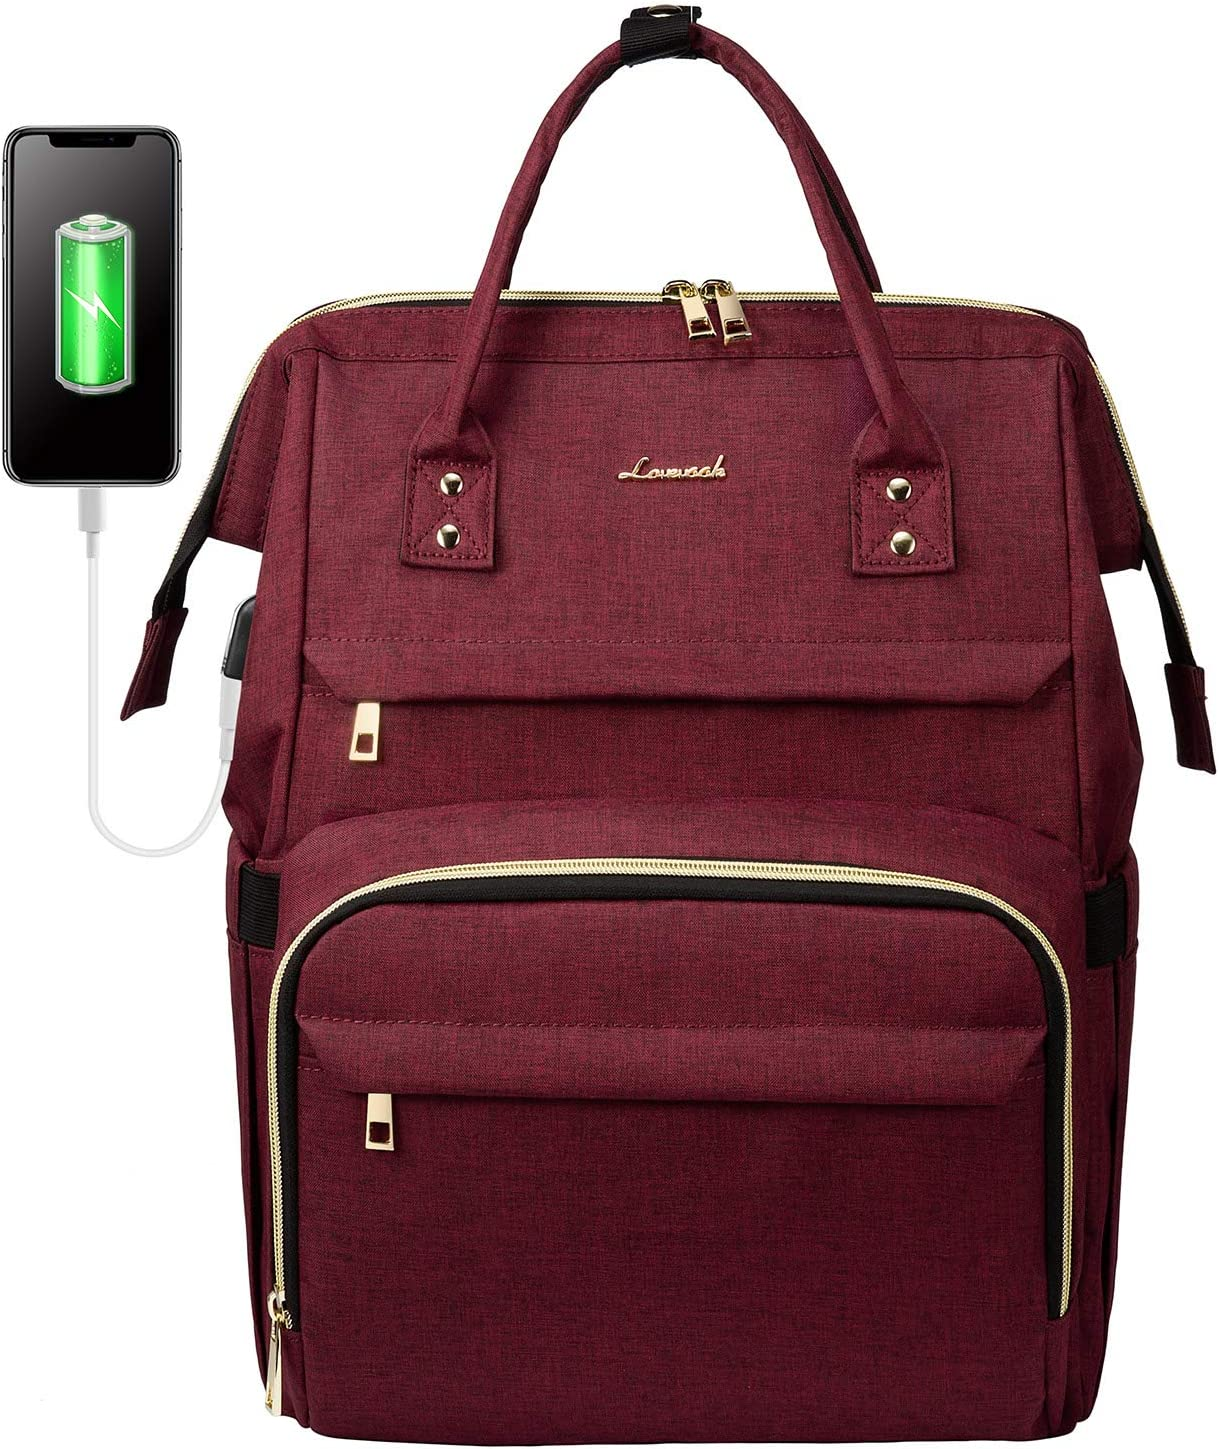 Laptop Backpack for Women Fashion Travel Bags Business Computer Purse Work Bag with USB Port, Wine Red